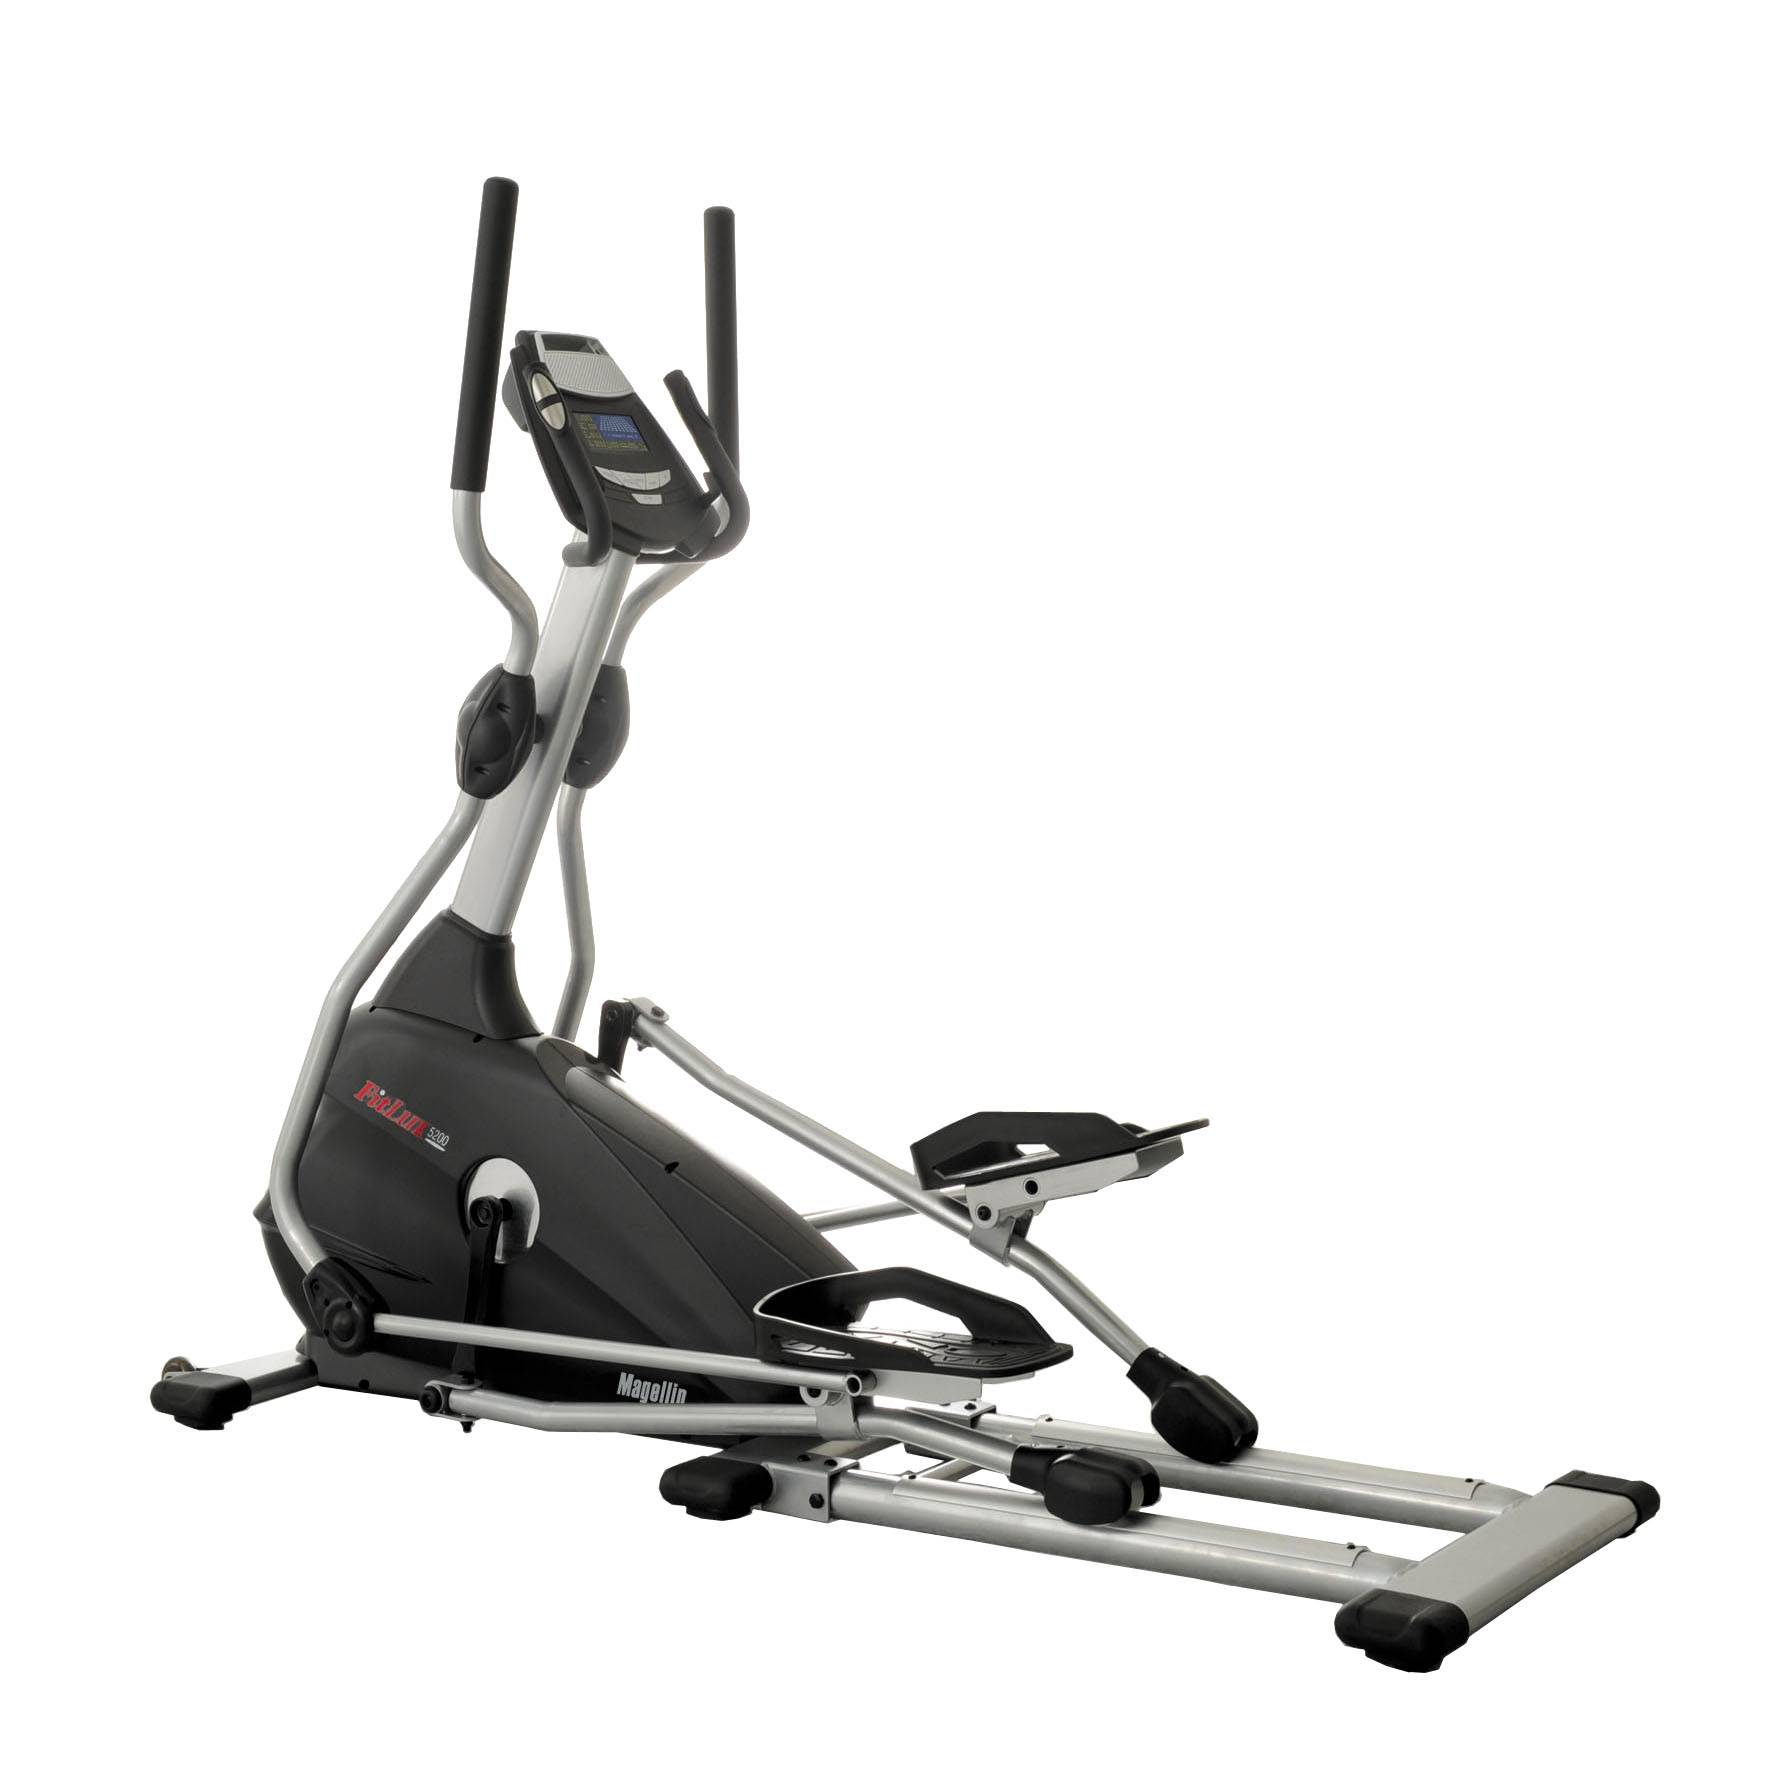 Elegant Taiwan- Made Elliptical Trainers for Deluxe Home Use- FItLux 5200